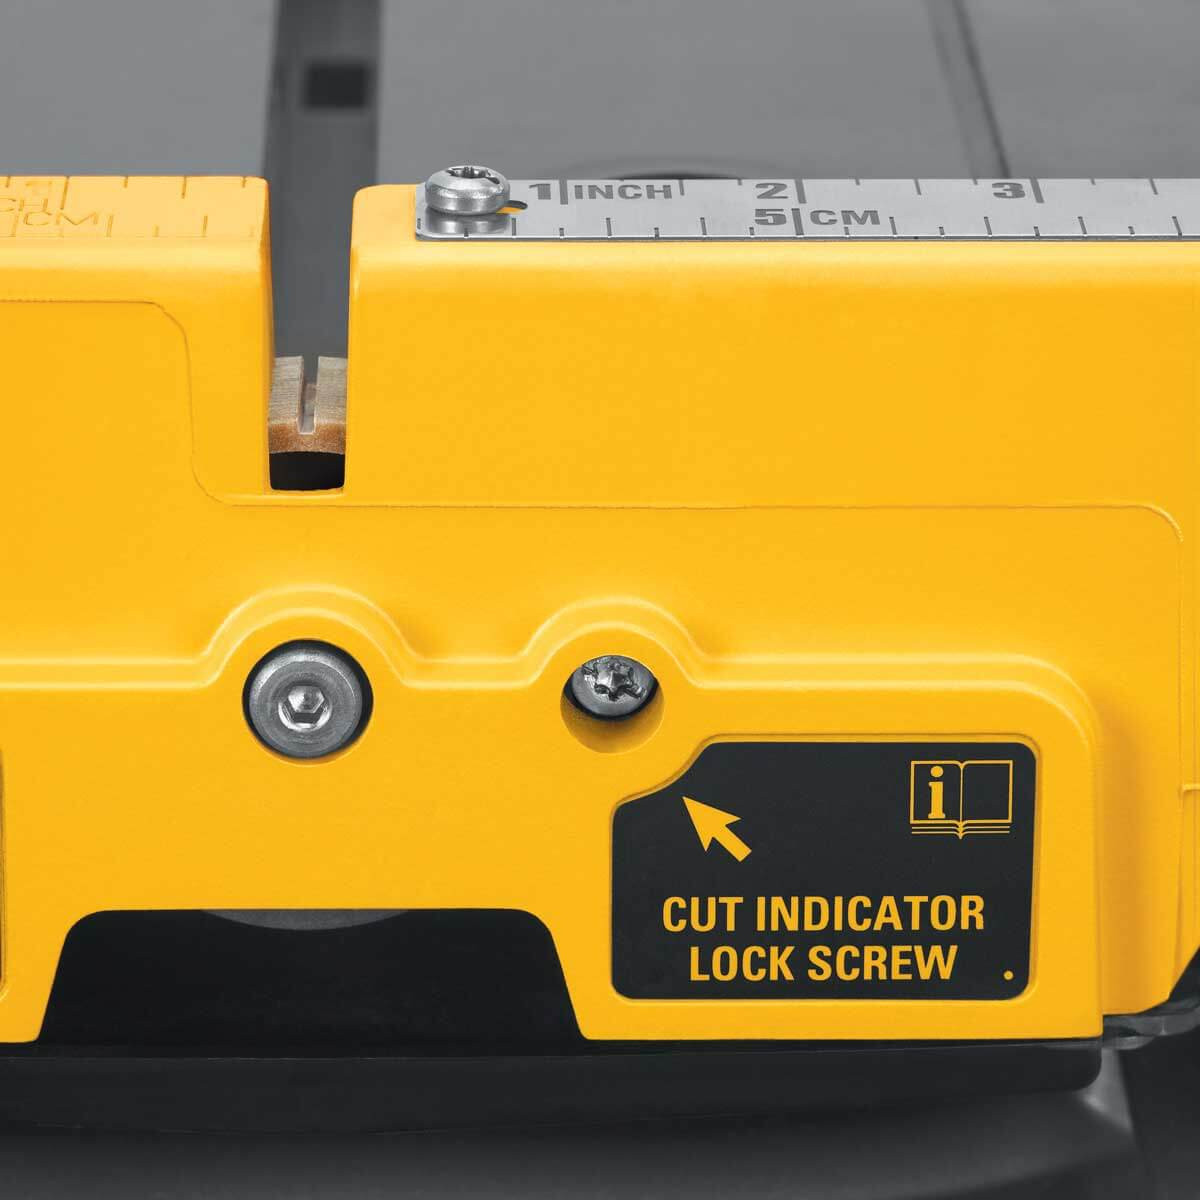 dewalt tile saw cut indicator screw